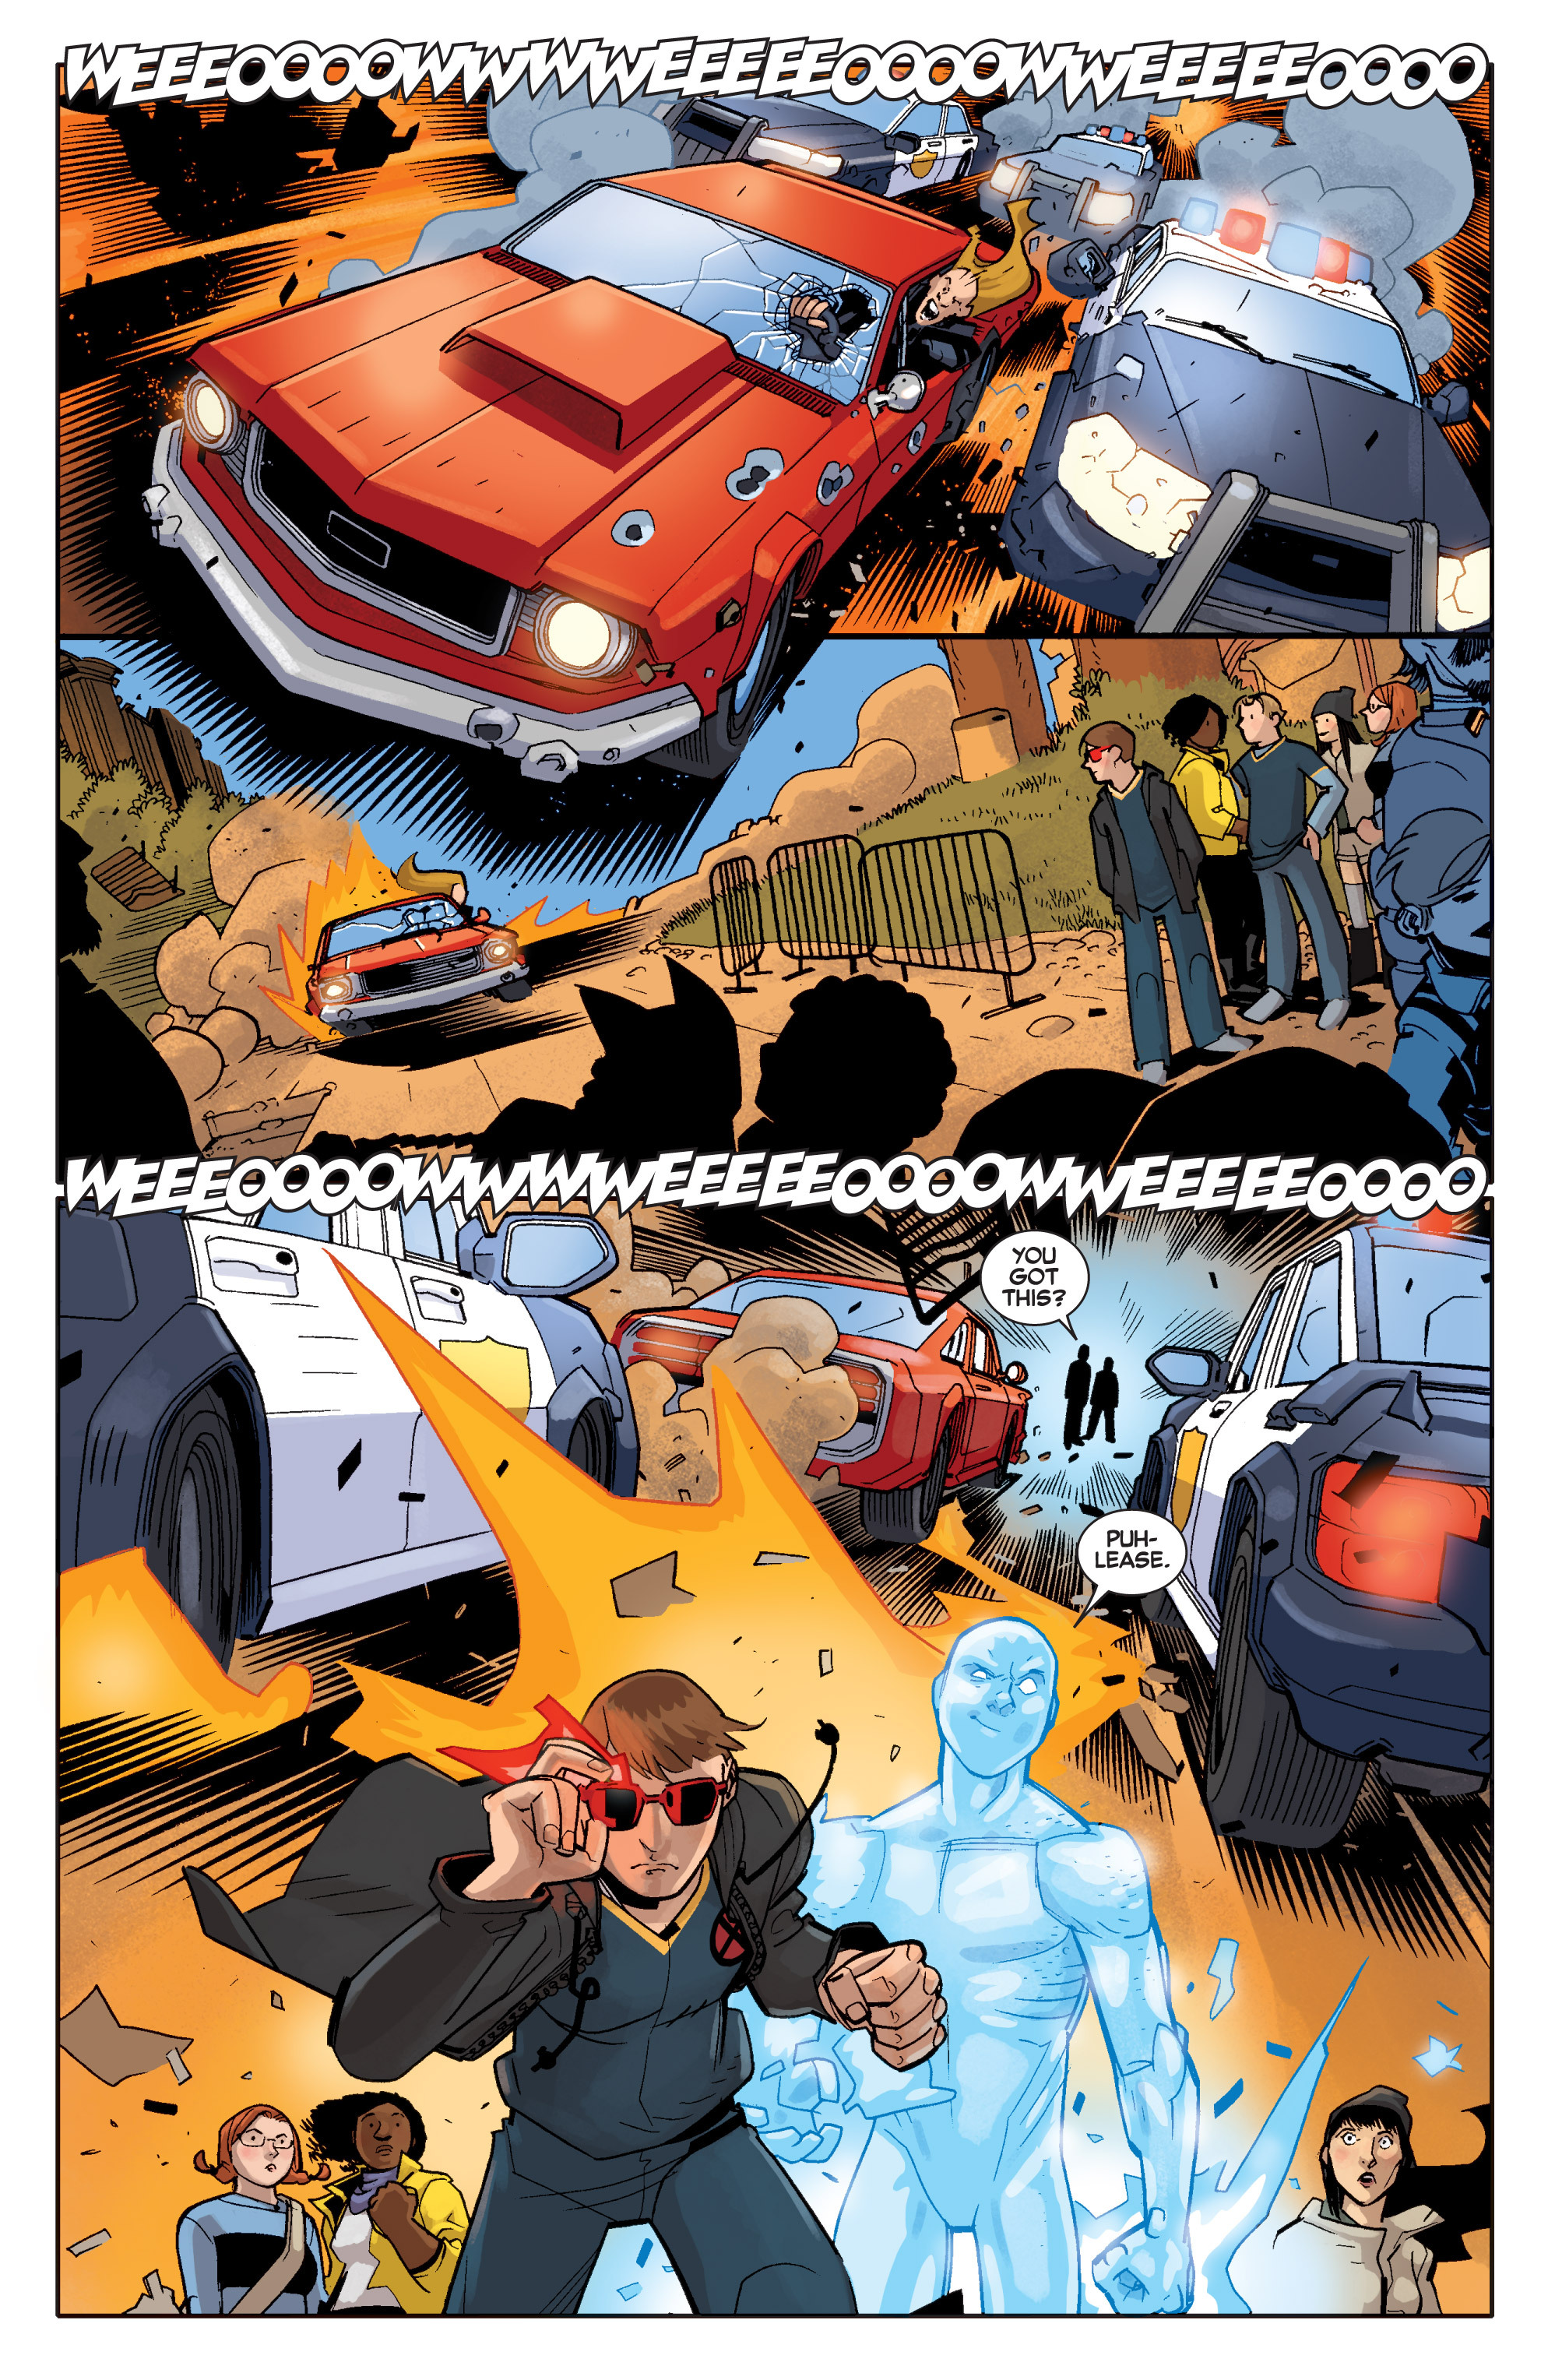 Read online All-New X-Men (2013) comic -  Issue # _Special - Out Of Their Depth - 106